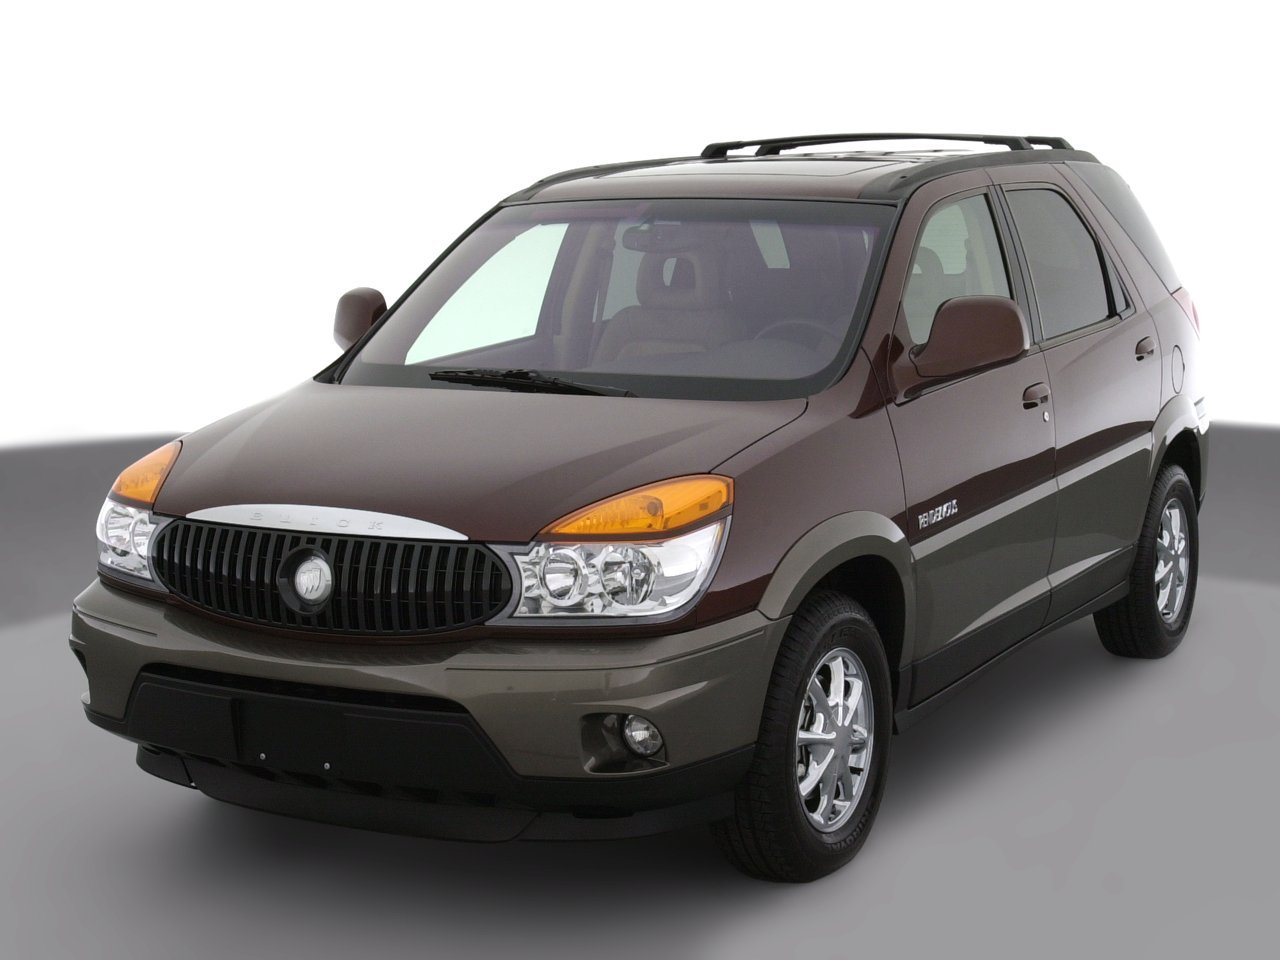 2003 buick rendezvous cx all wheel drive